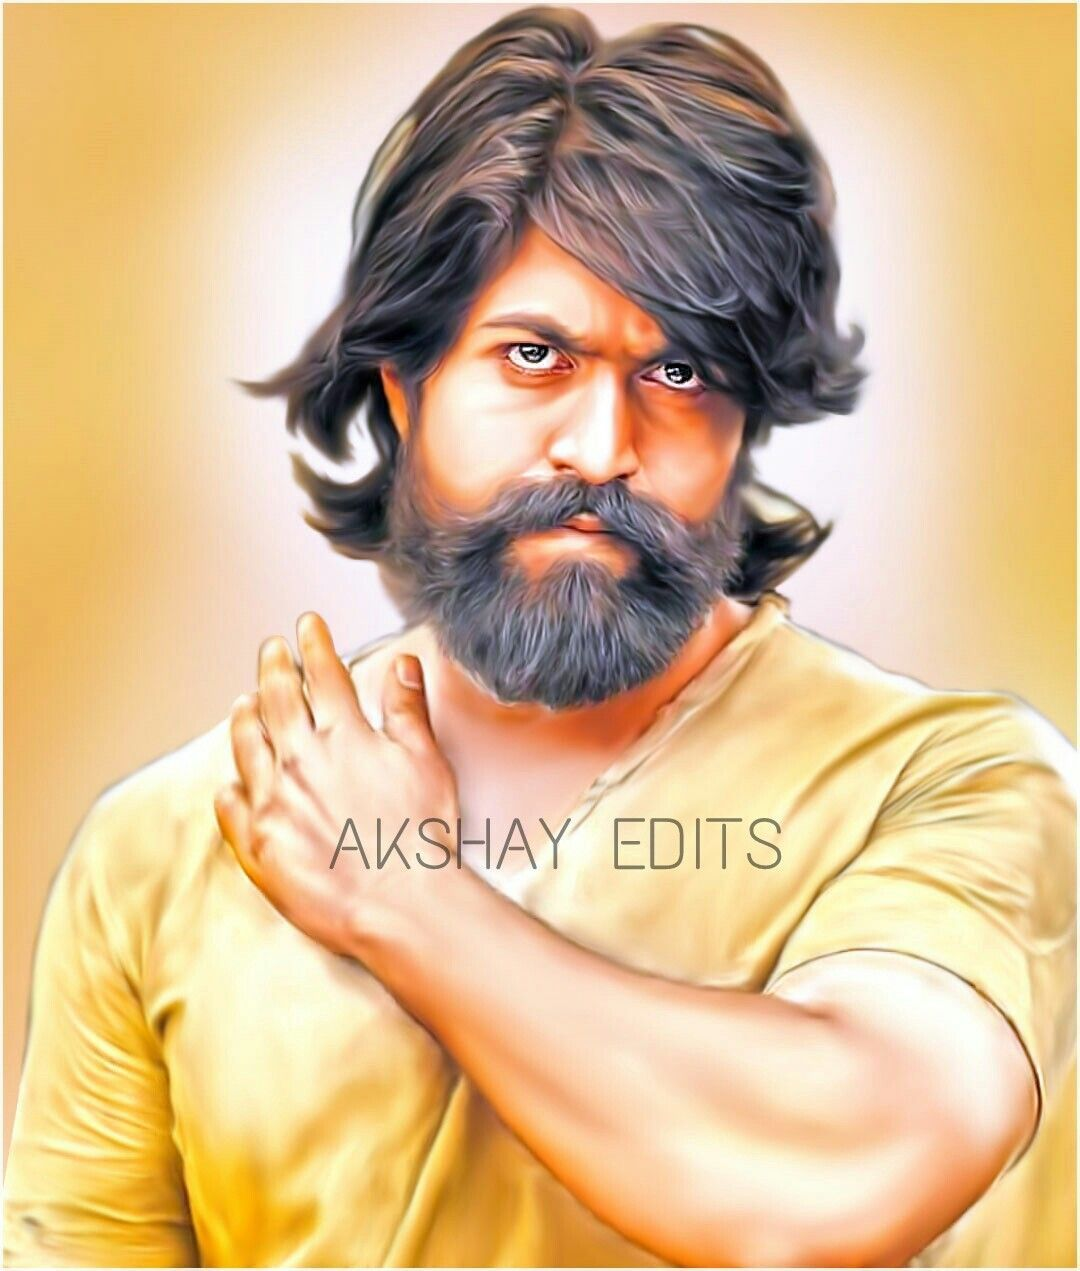 Kgf Wallpaper 4k For Pc Trick In 2020 Actor Photo Actor Picture Cute Actors